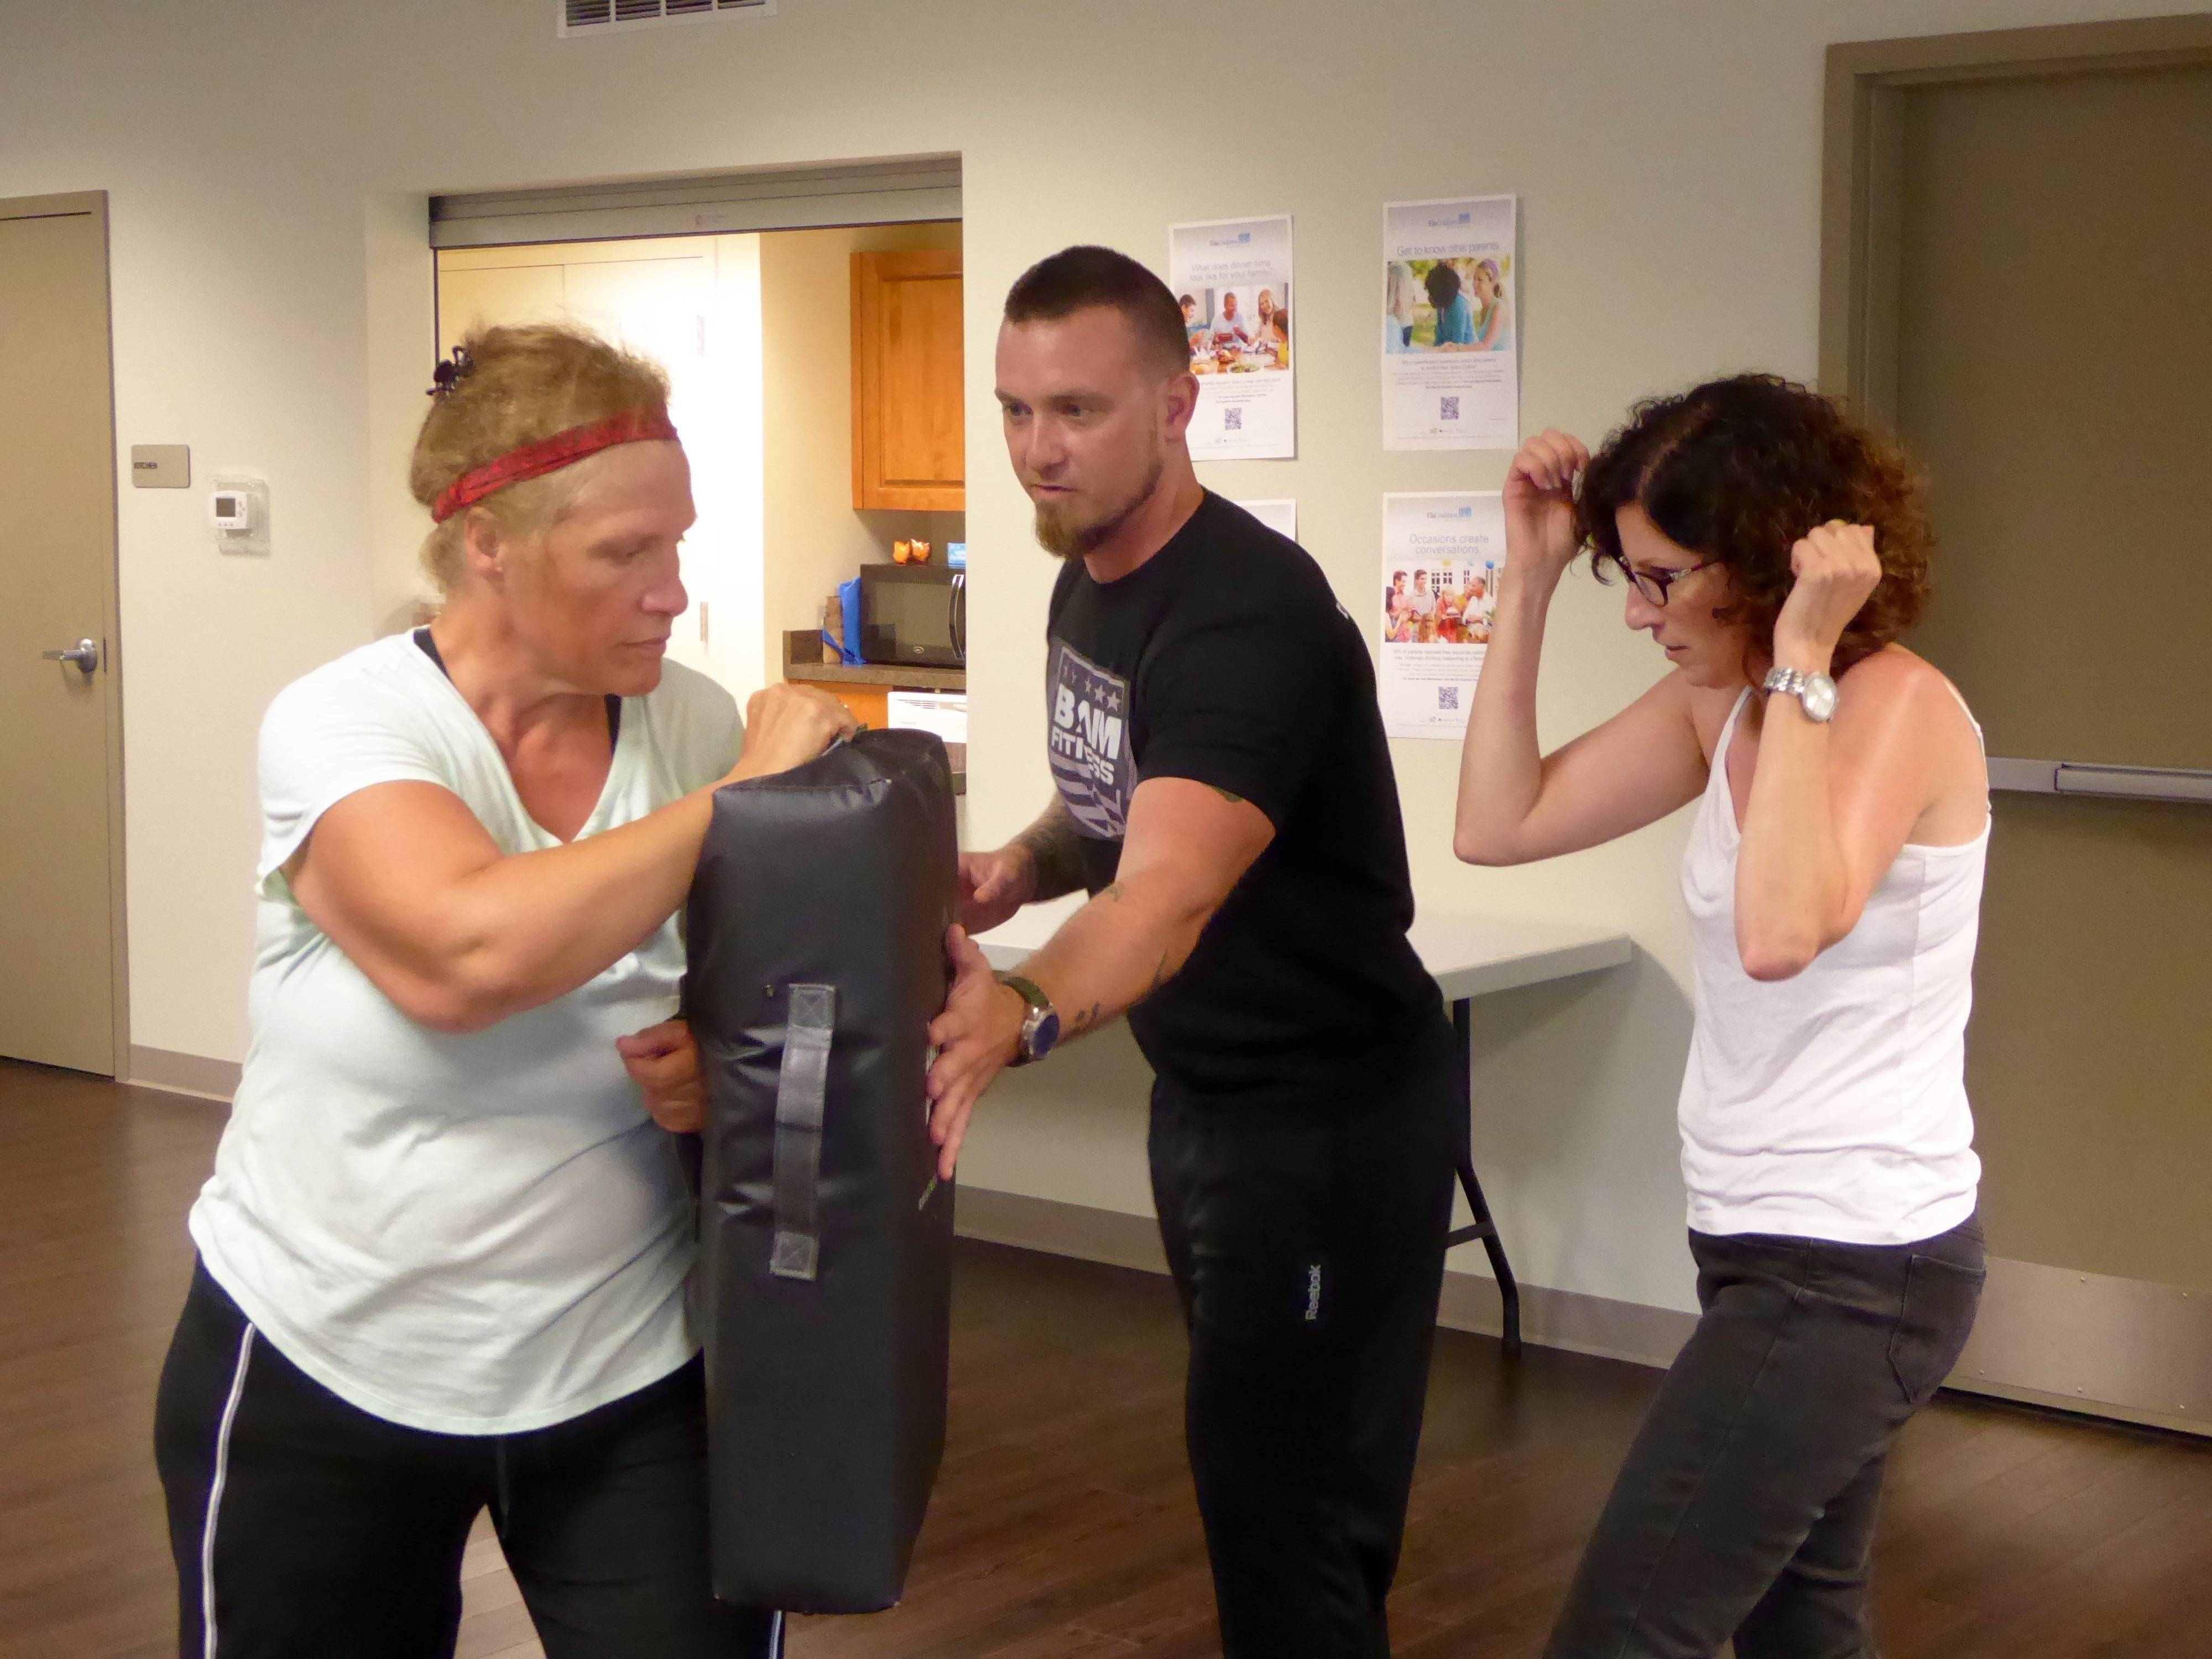 Personal trainer Bill Miller, of Bam Fitness, instructs resident Debbie Jurf and Ela Township Social Worker Roberta Smith on self-defense tactics during a program hosted by Ela Township Community Family Services on June 8.​Ela Township